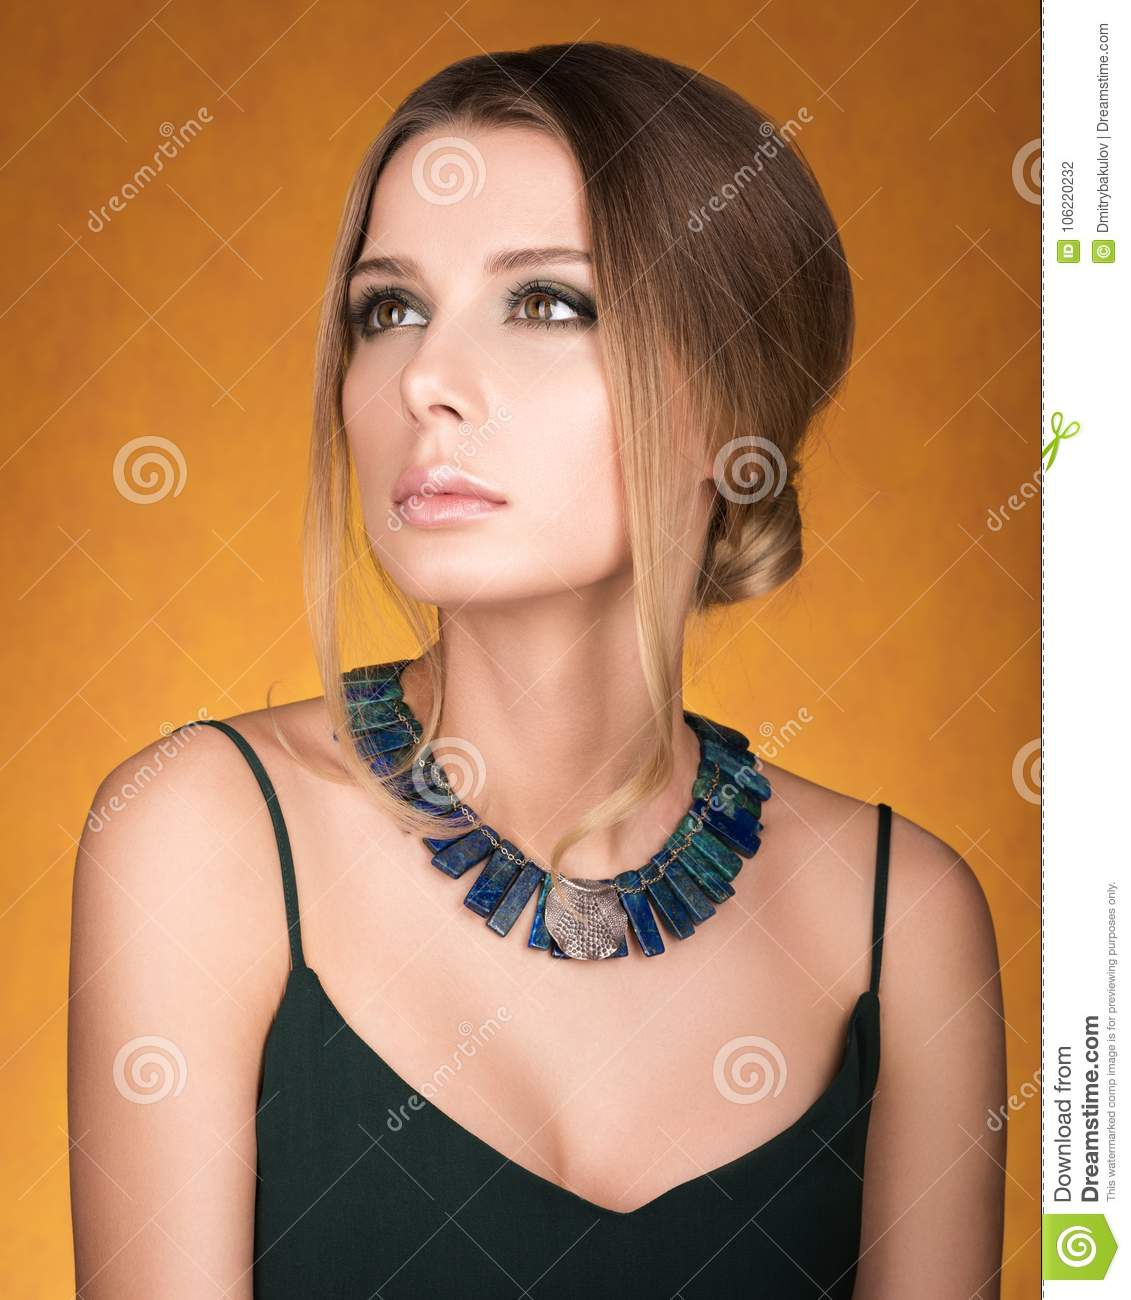 Portrait Of Beautiful Young Woman With A Necklace On Her Neck